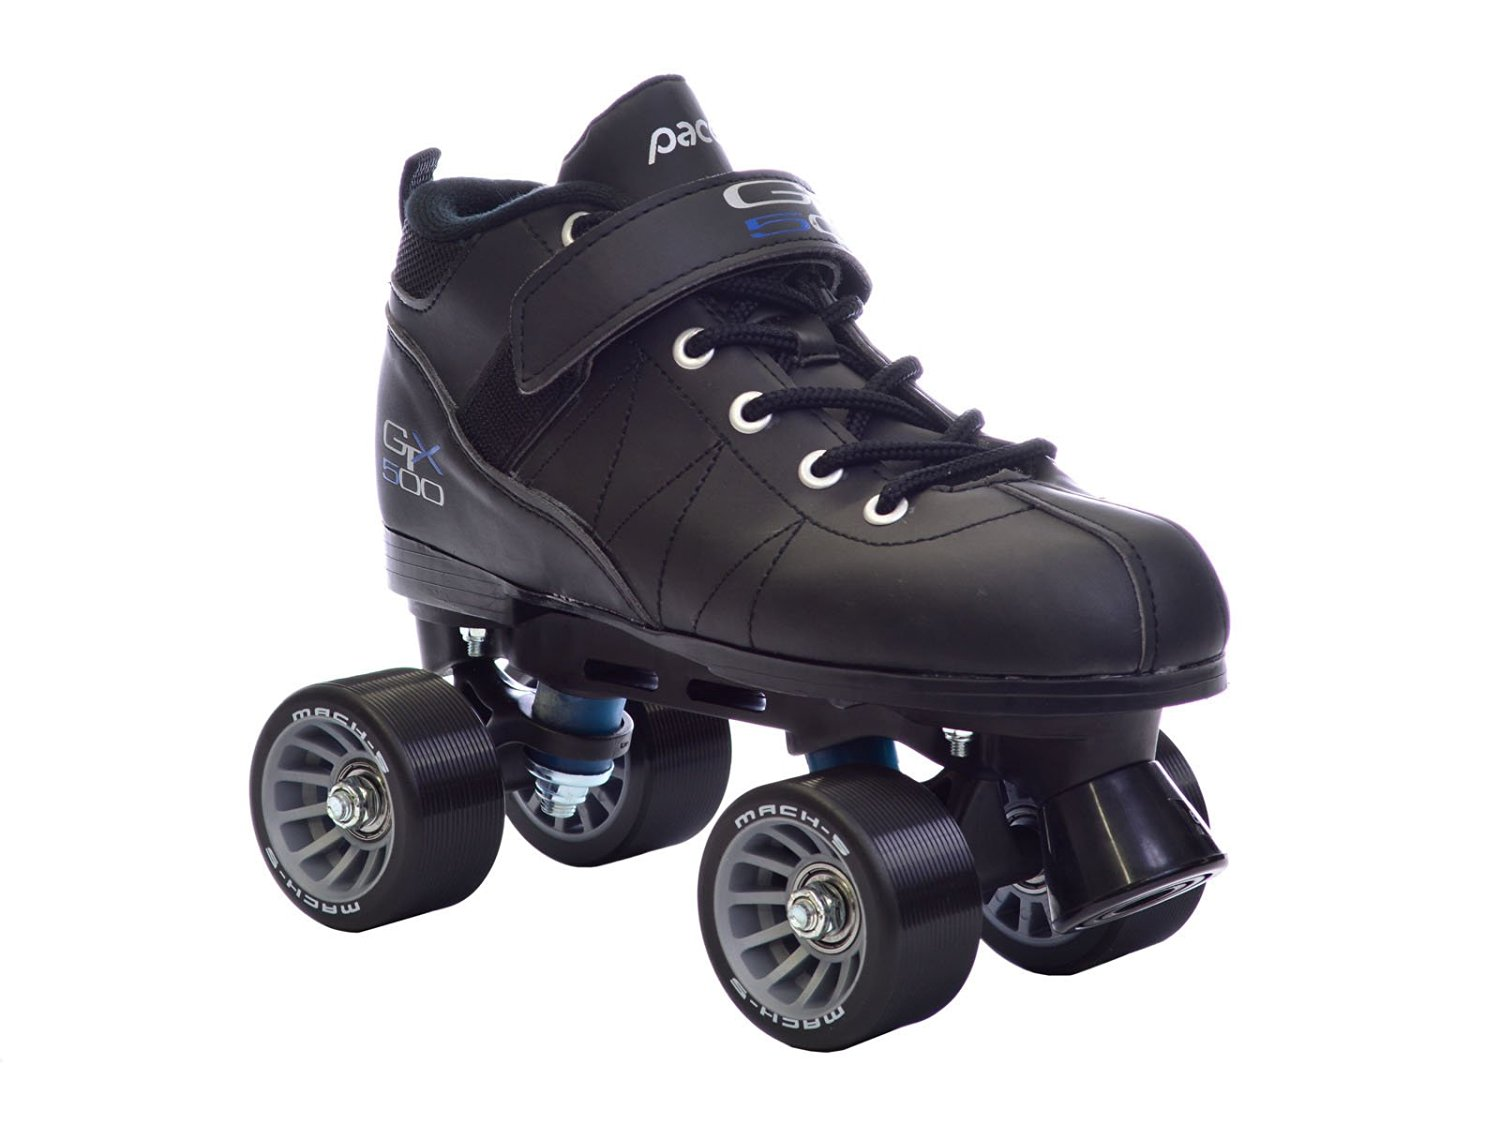 Pacer GTX-500 Black Quad Roller Derby Speed Skates Youth Sz 1